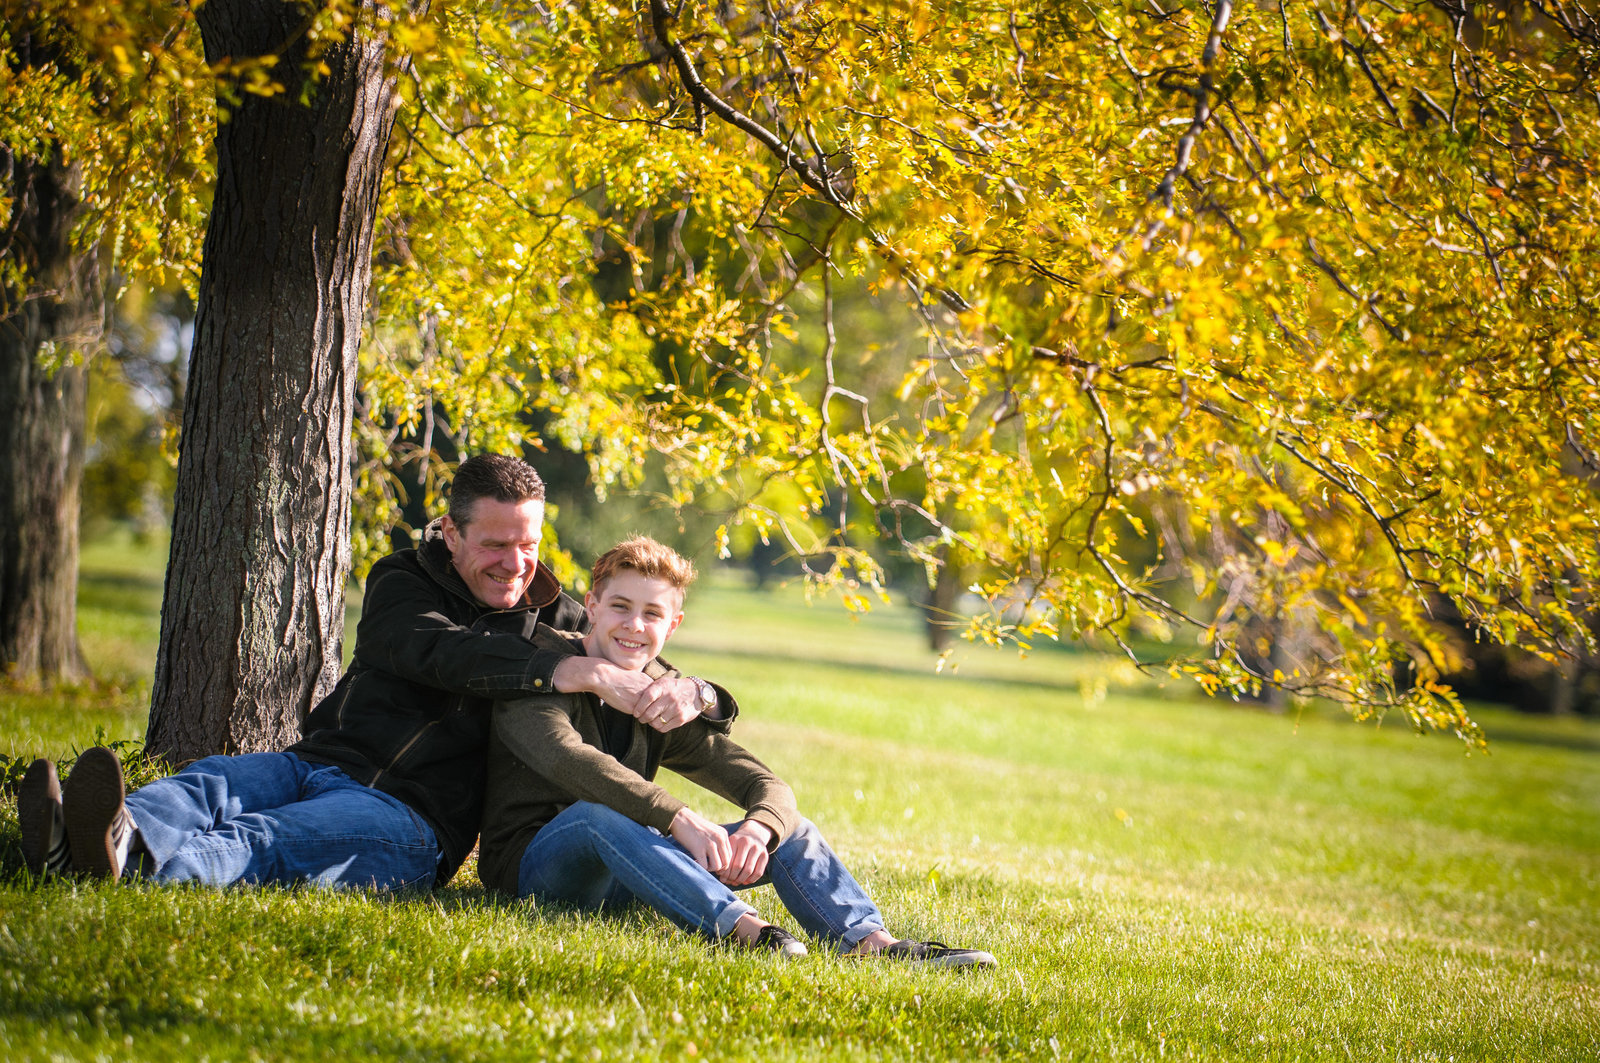 FamilyPhotos.AngelaGarbotPhotography.Family.WinfriedErich-008.Showit